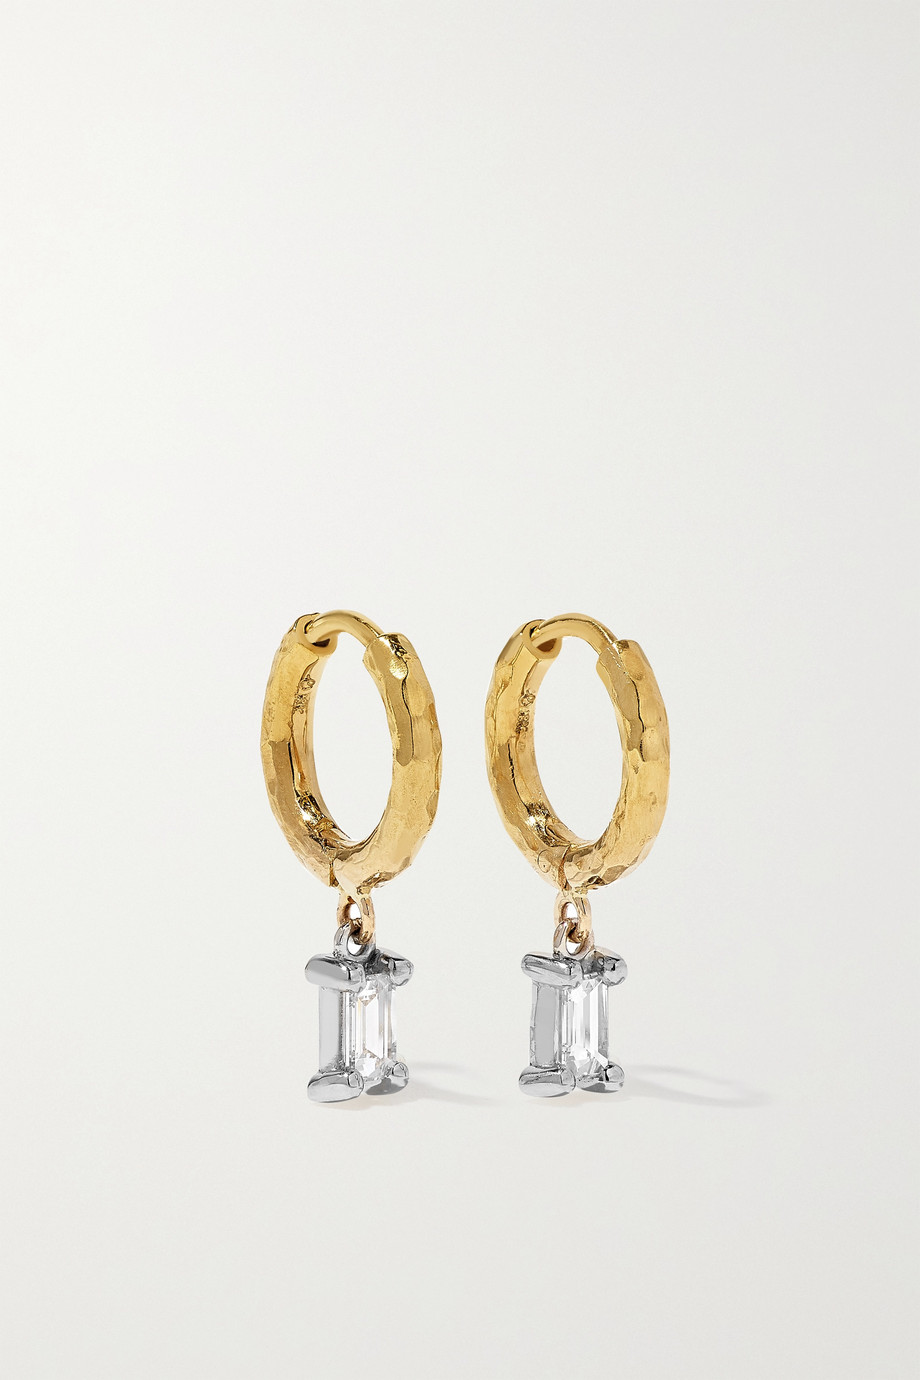 OCTAVIA ELIZABETH + NET SUSTAIN Micro Gabby recycled 18-karat gold diamond hoop earrings